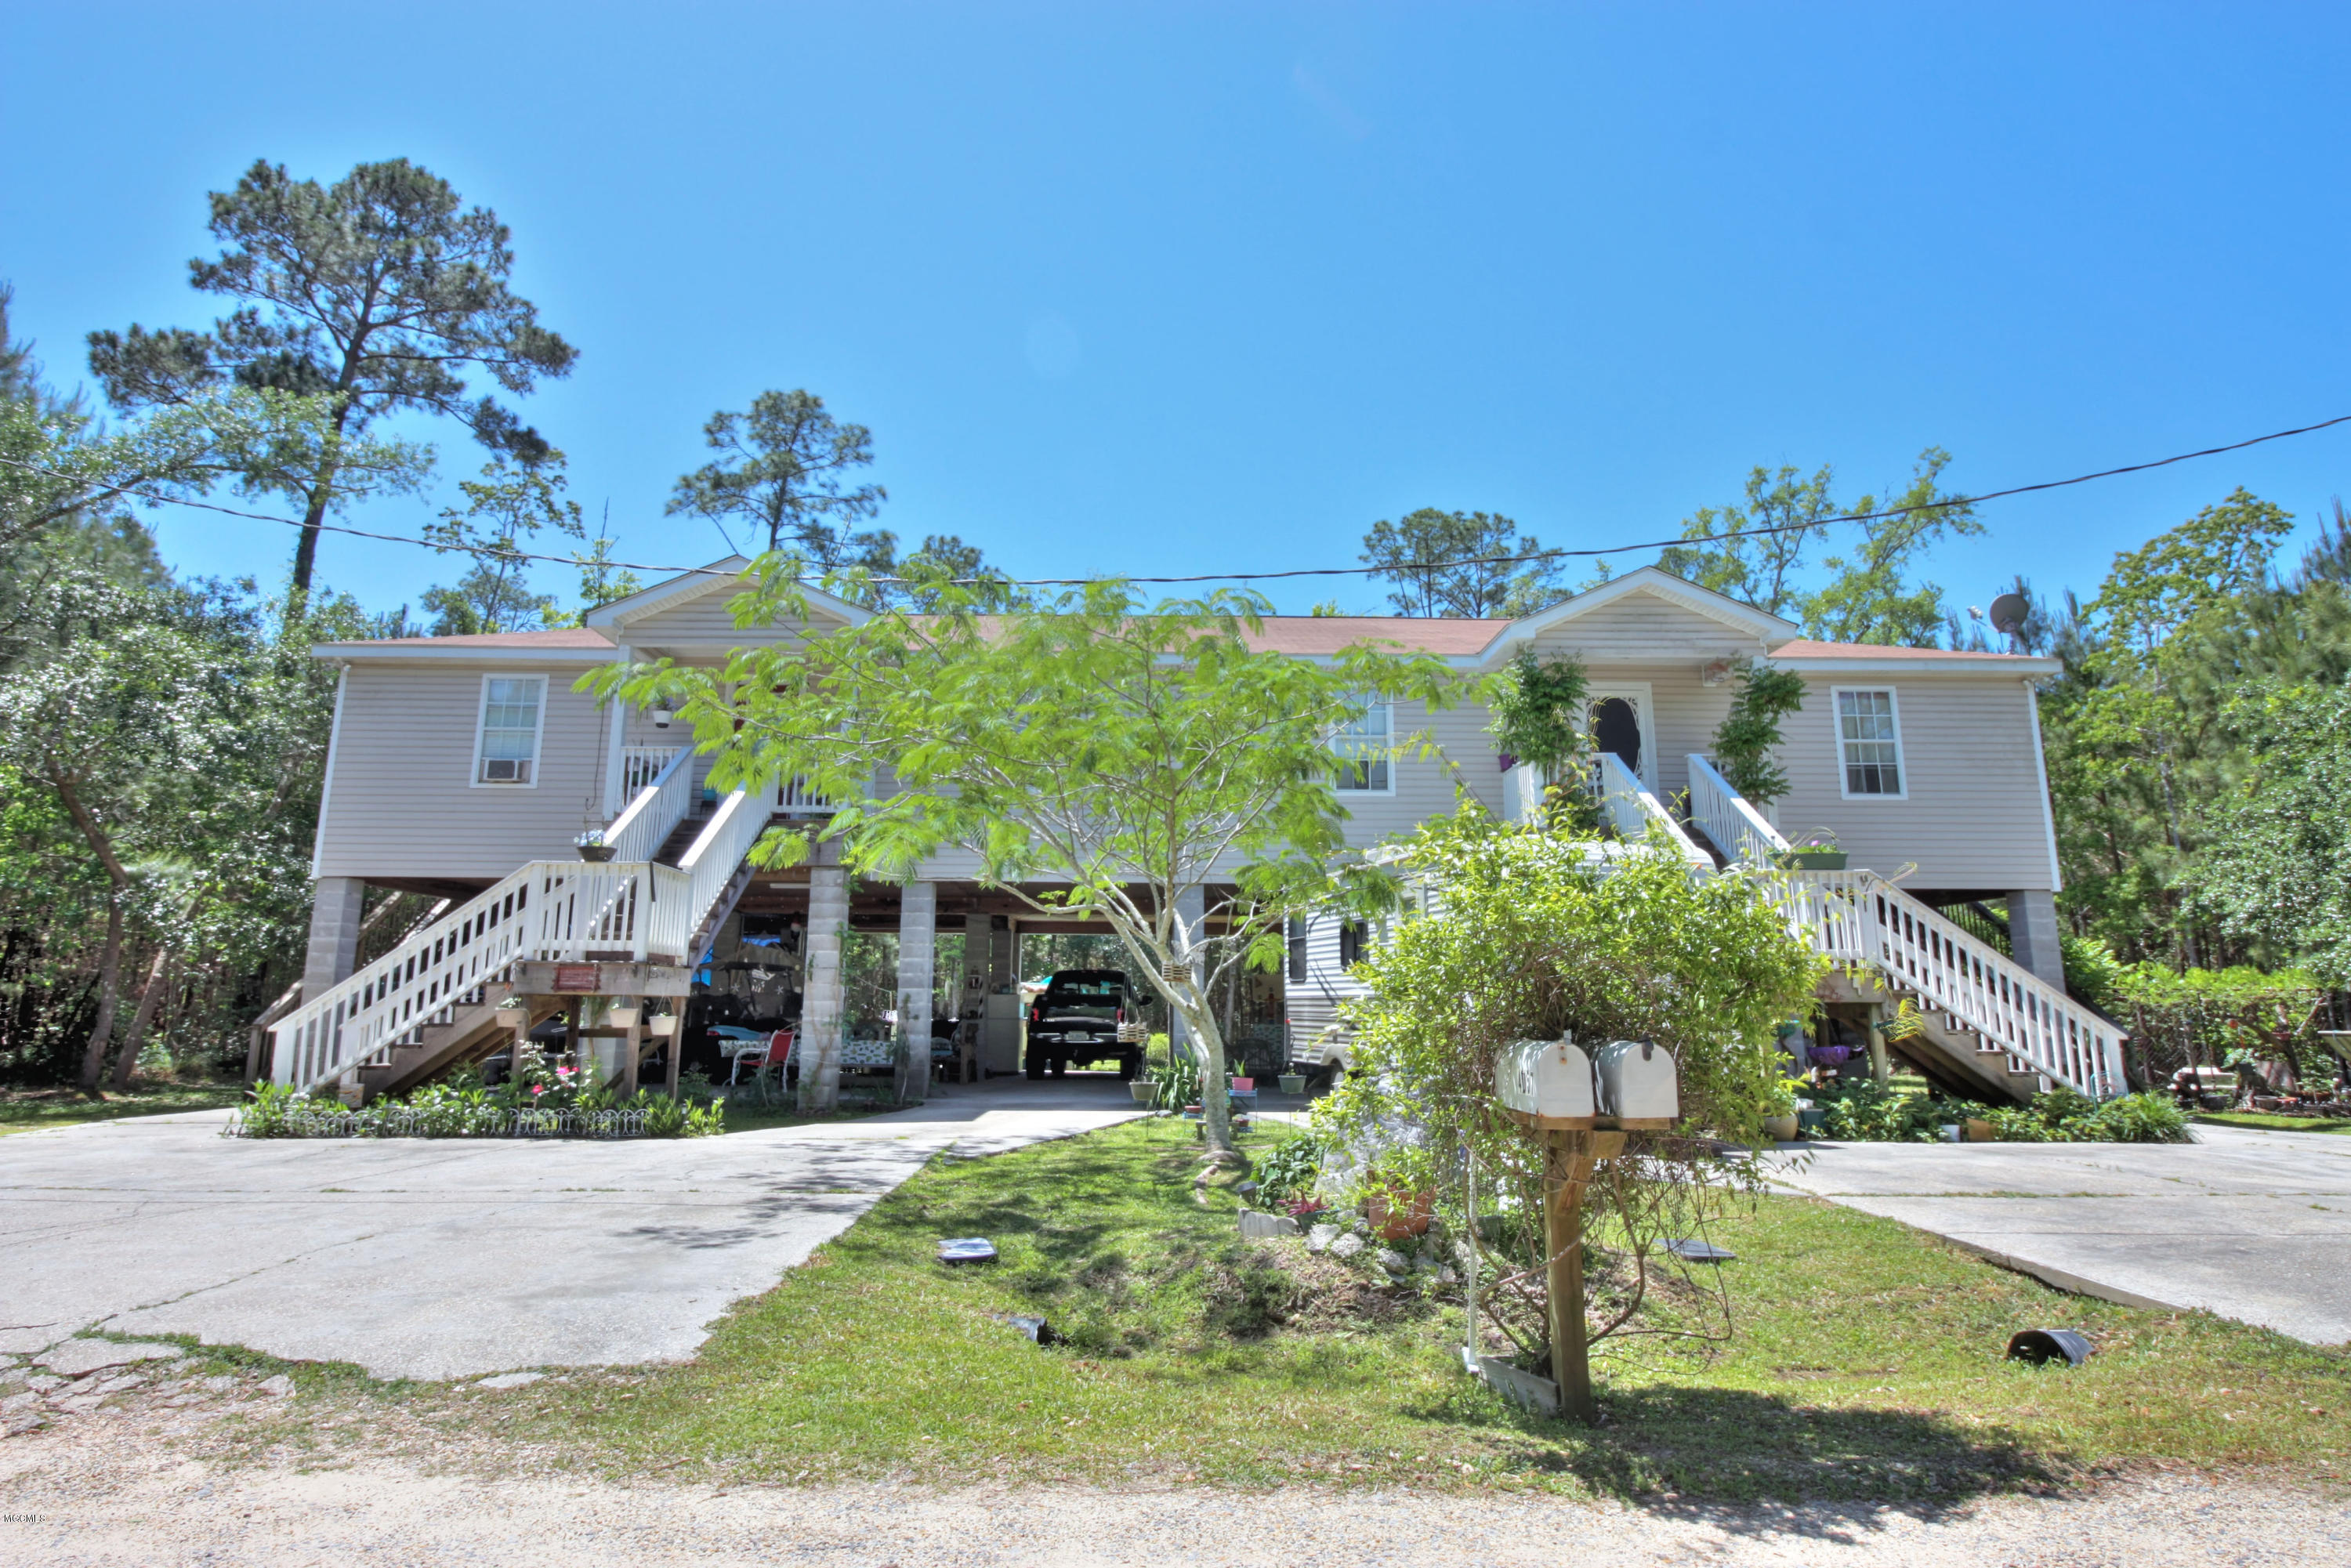 4057-4059 6th Ave,Bay St. Louis,Mississippi 39520,Multi-Family,6th,332976